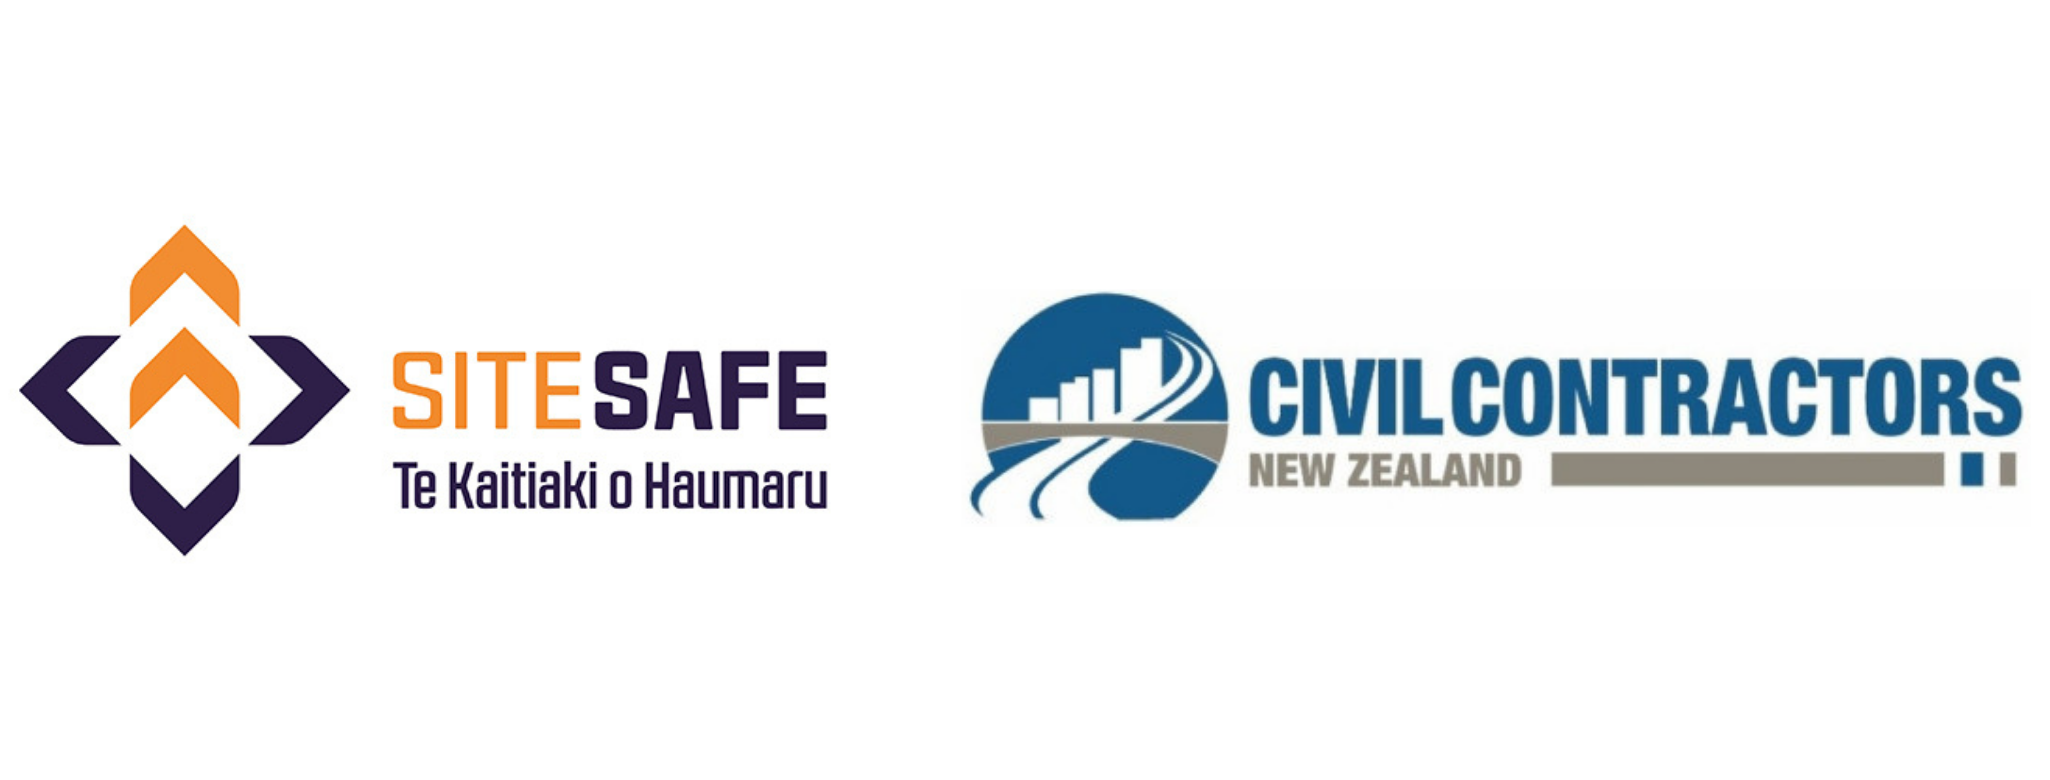 Site Safe and Civil Contractors logos